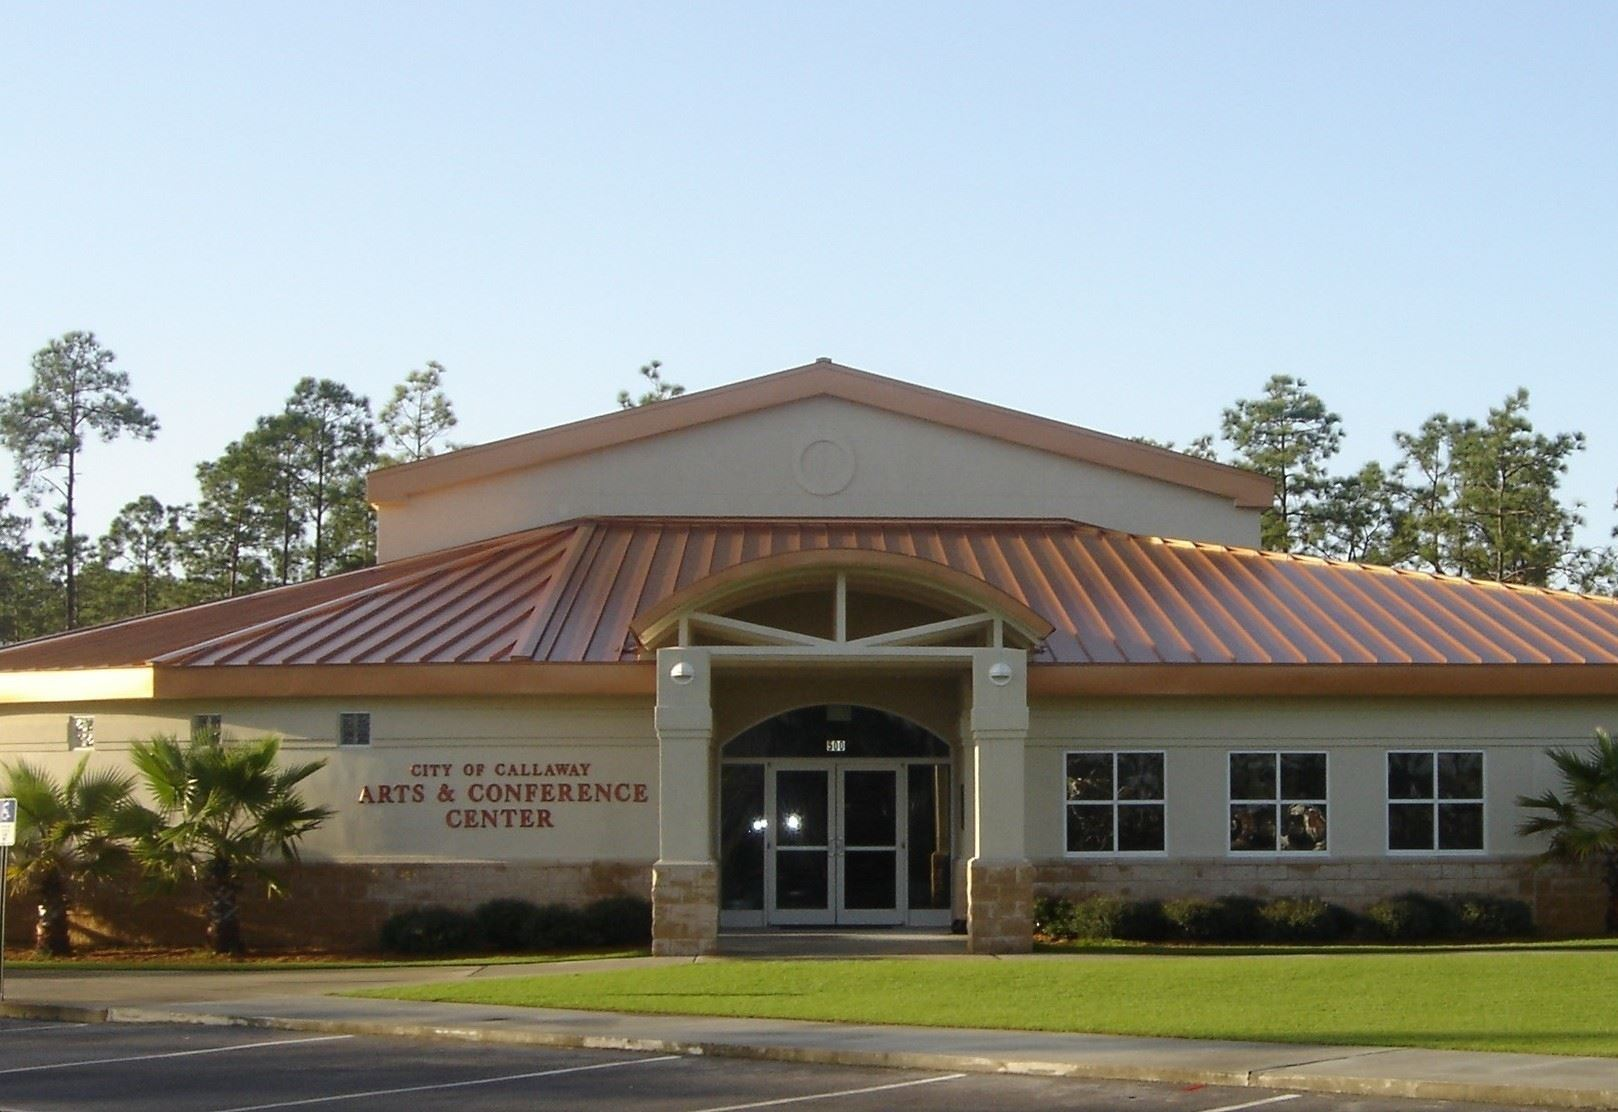 Callaway Arts & Conference Center